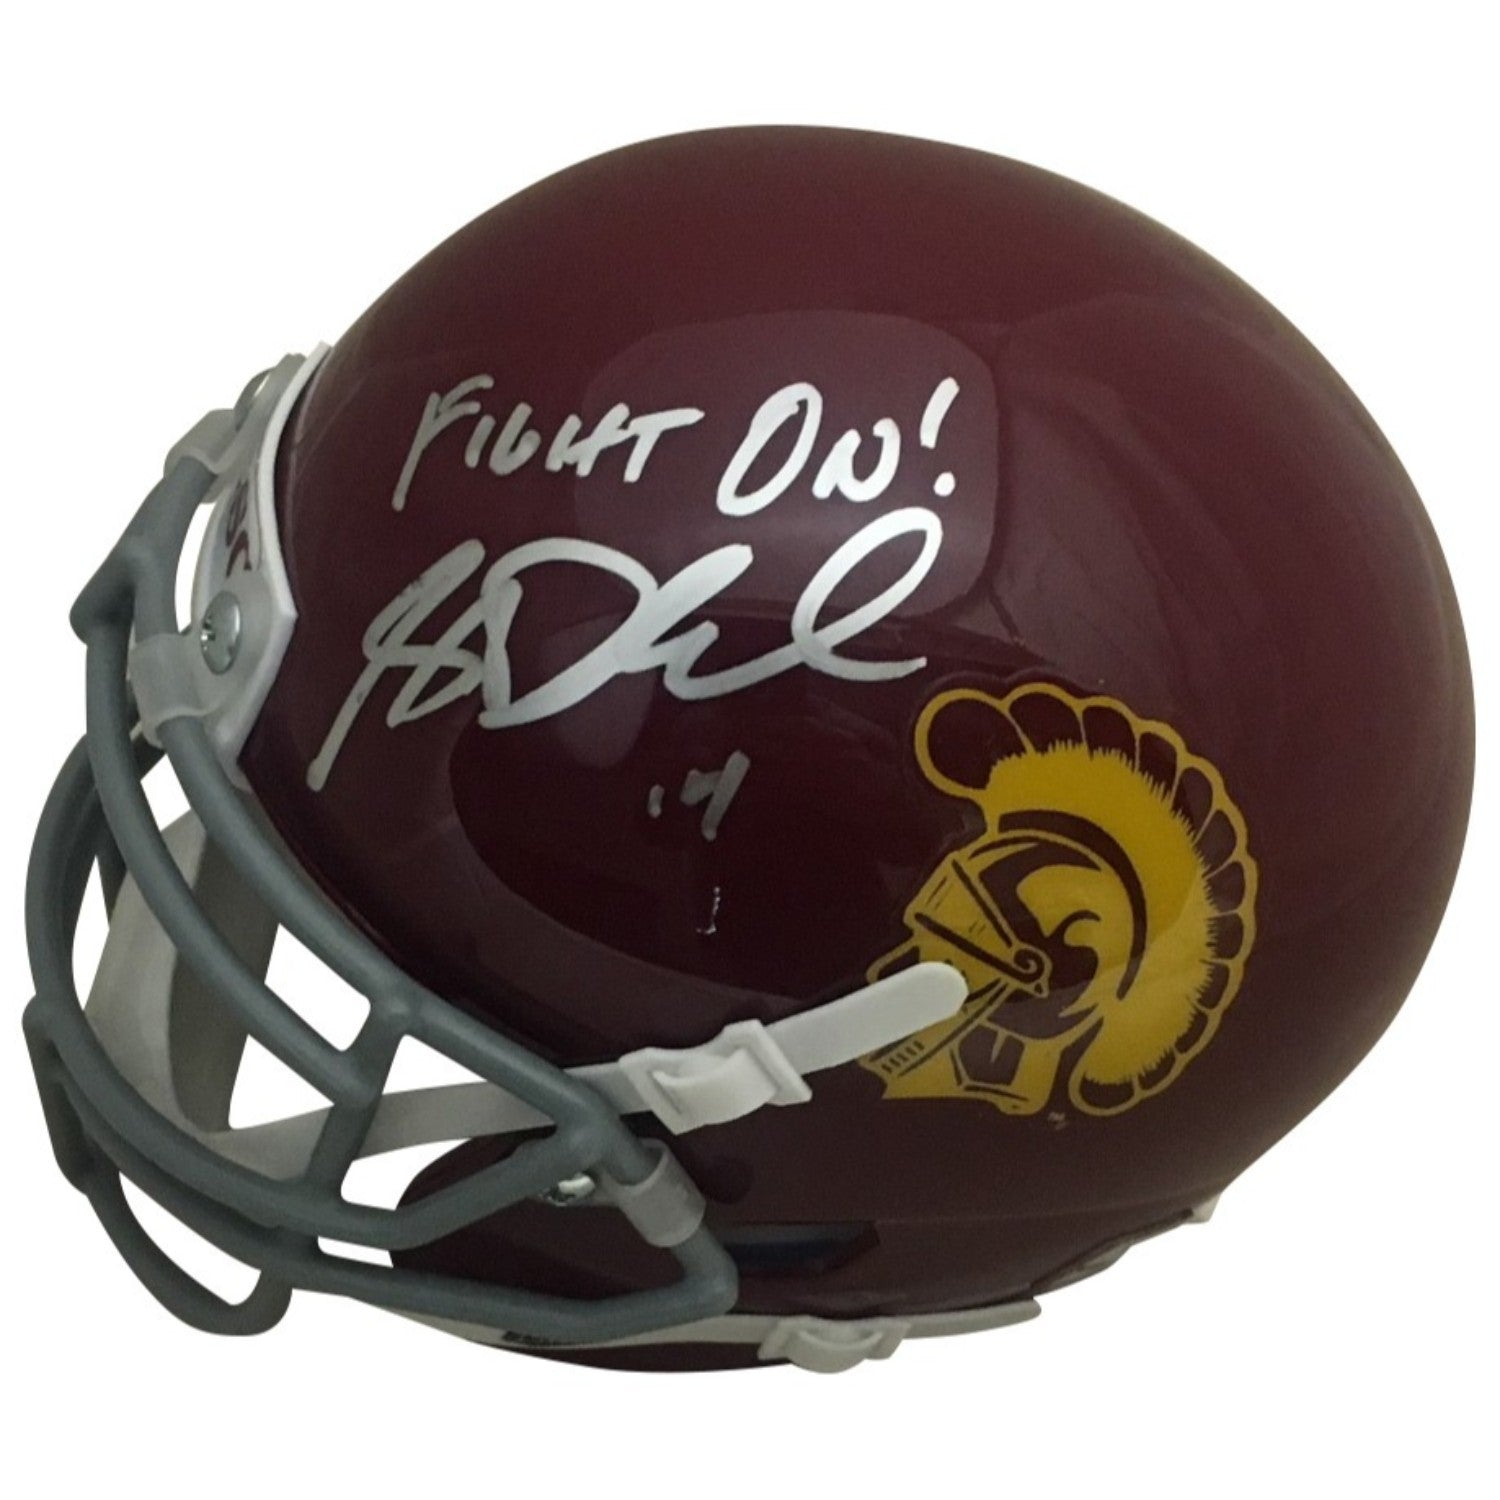 Sam Darnold Autographed USC Trojans Signed Football FIGHT ON Mini Helmet JSA COA 2-Powers Sports Memorabilia